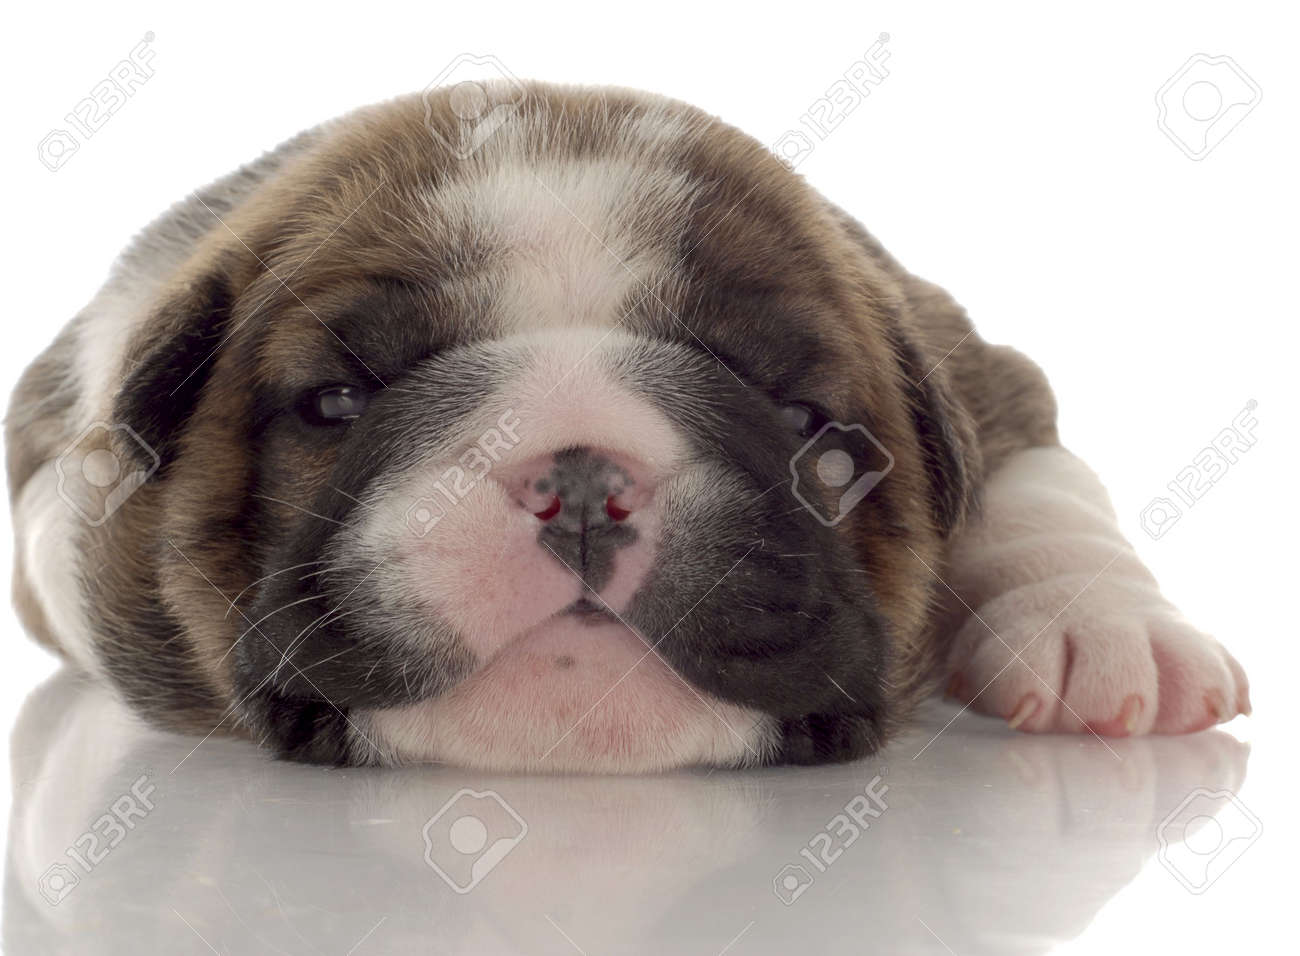 Three Week Old Brindle And White English Bulldog Puppy Stock Photo Picture And Royalty Free Image Image 6139512